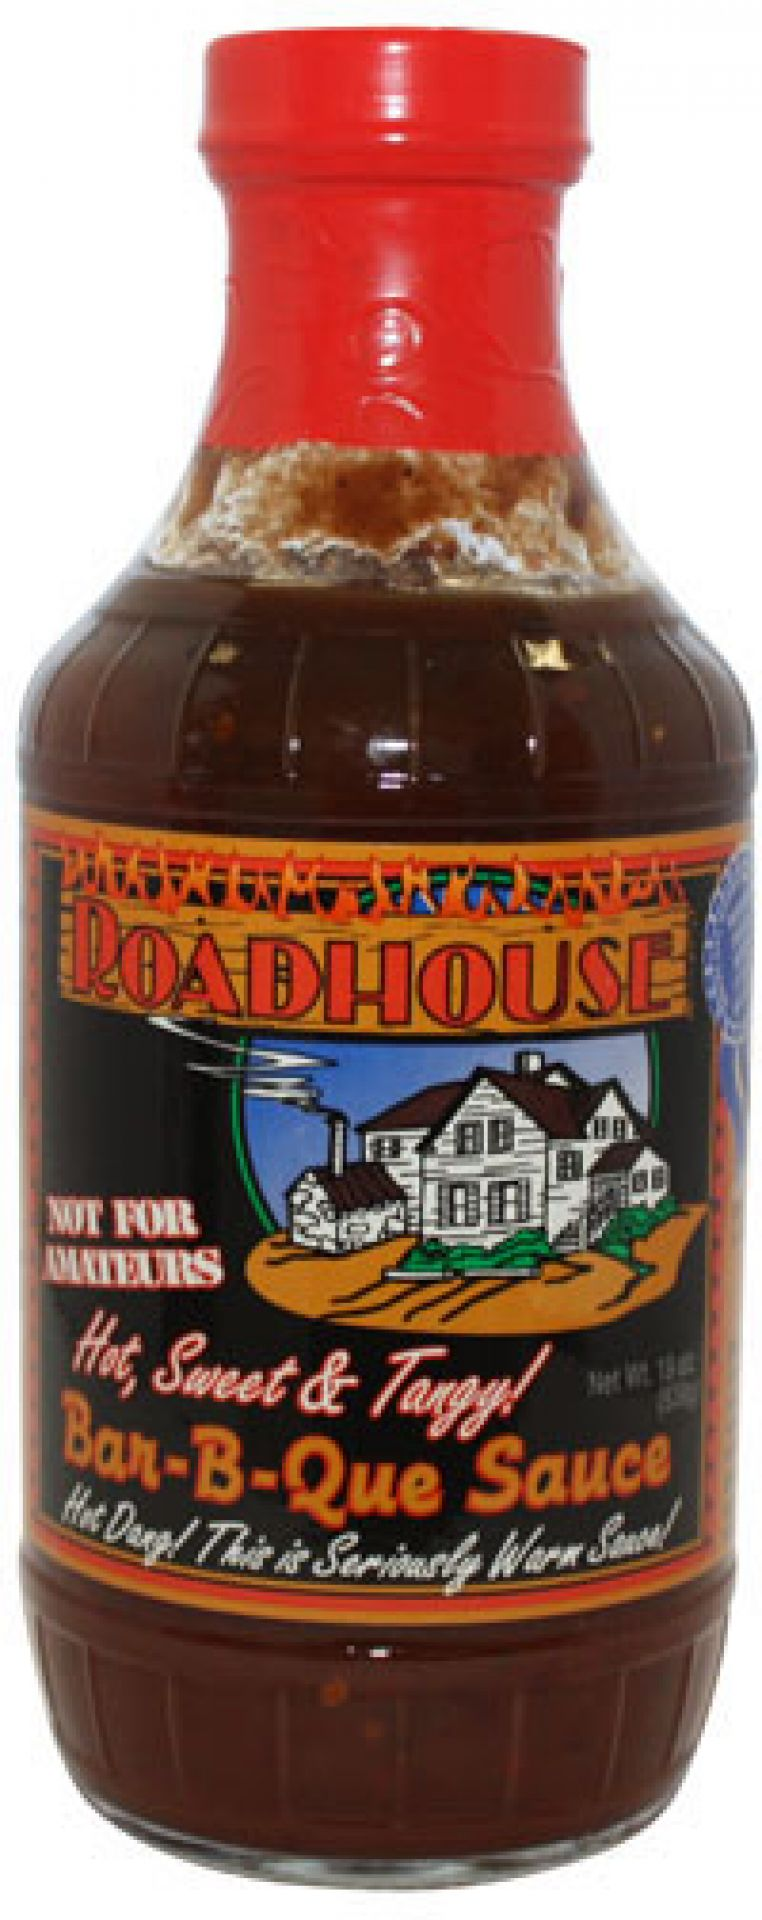 Roadhouse Hot Sweet and Tangy BBQ Sauce